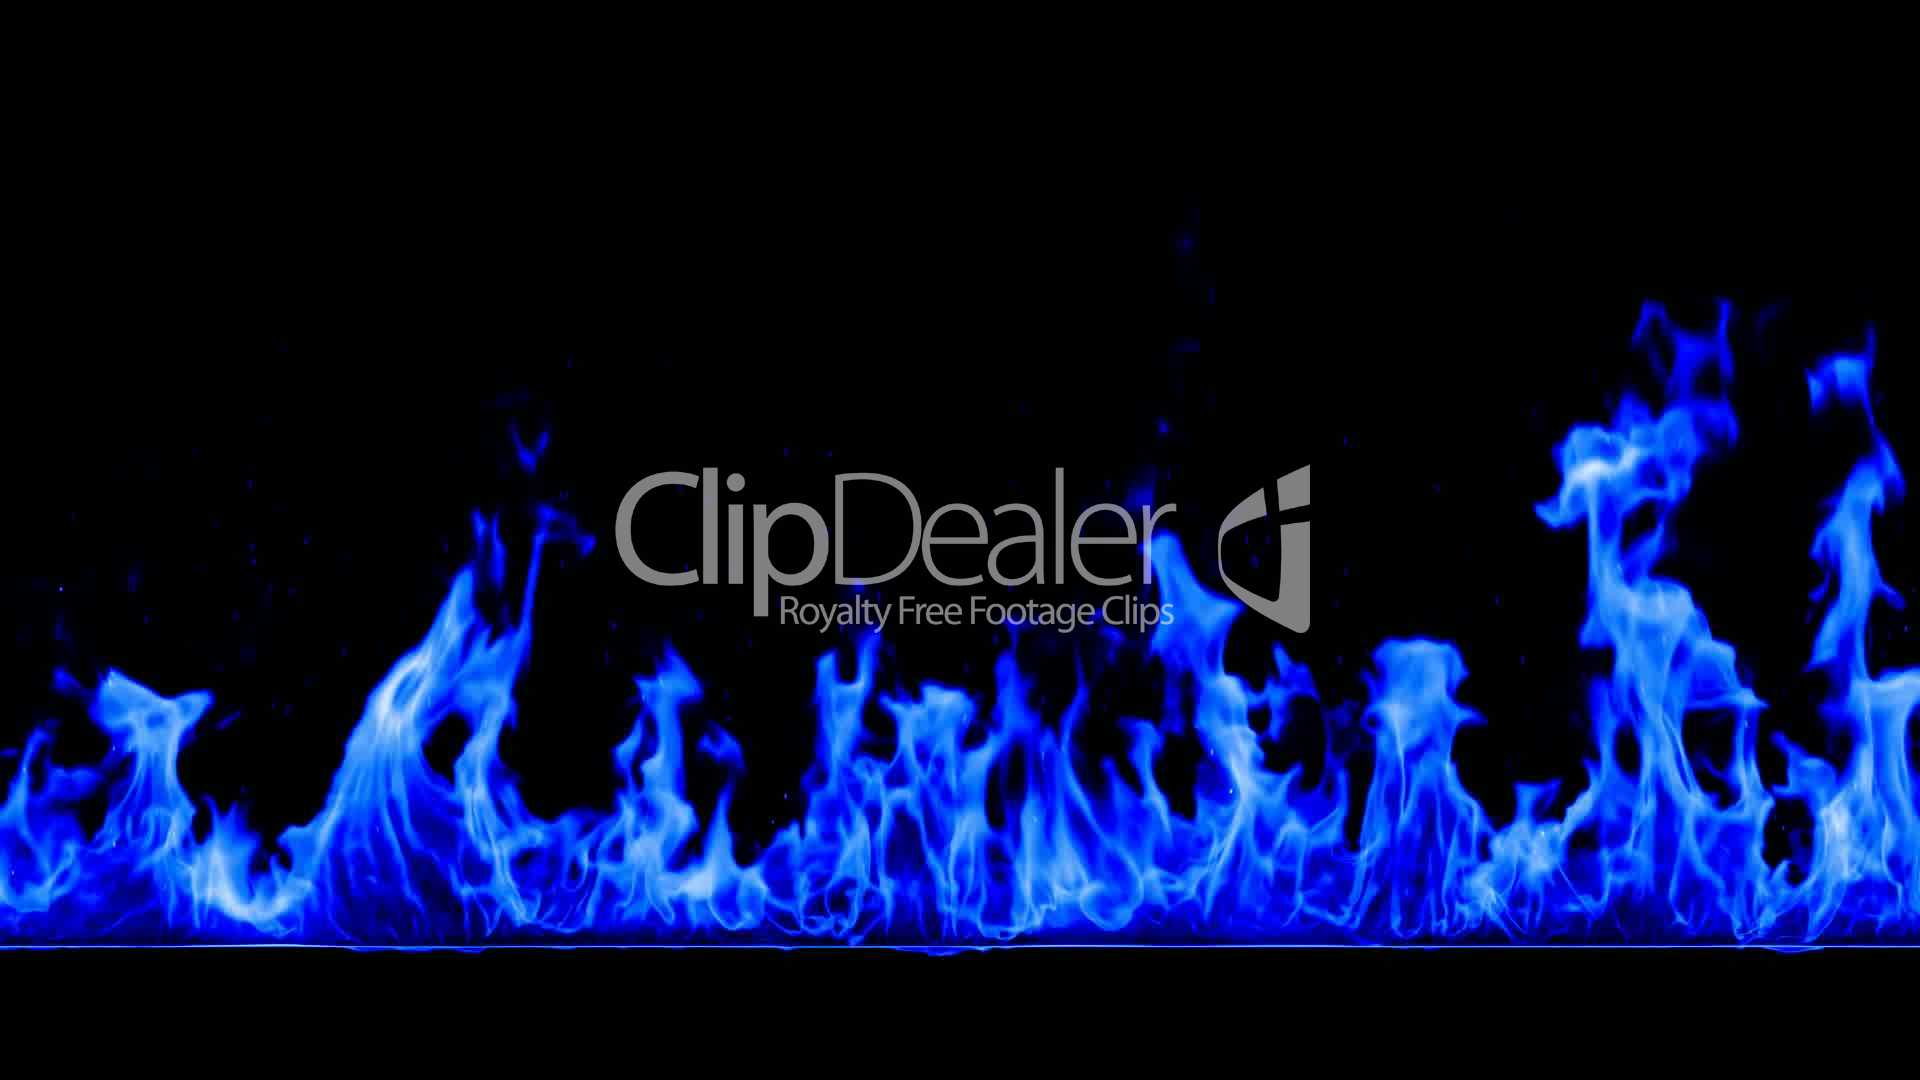 Hd Christbaumschmuck Royalty Free Video And Stock Footage Fire Blue Hd 1080 Loopable Alpha Royalty Free Video And